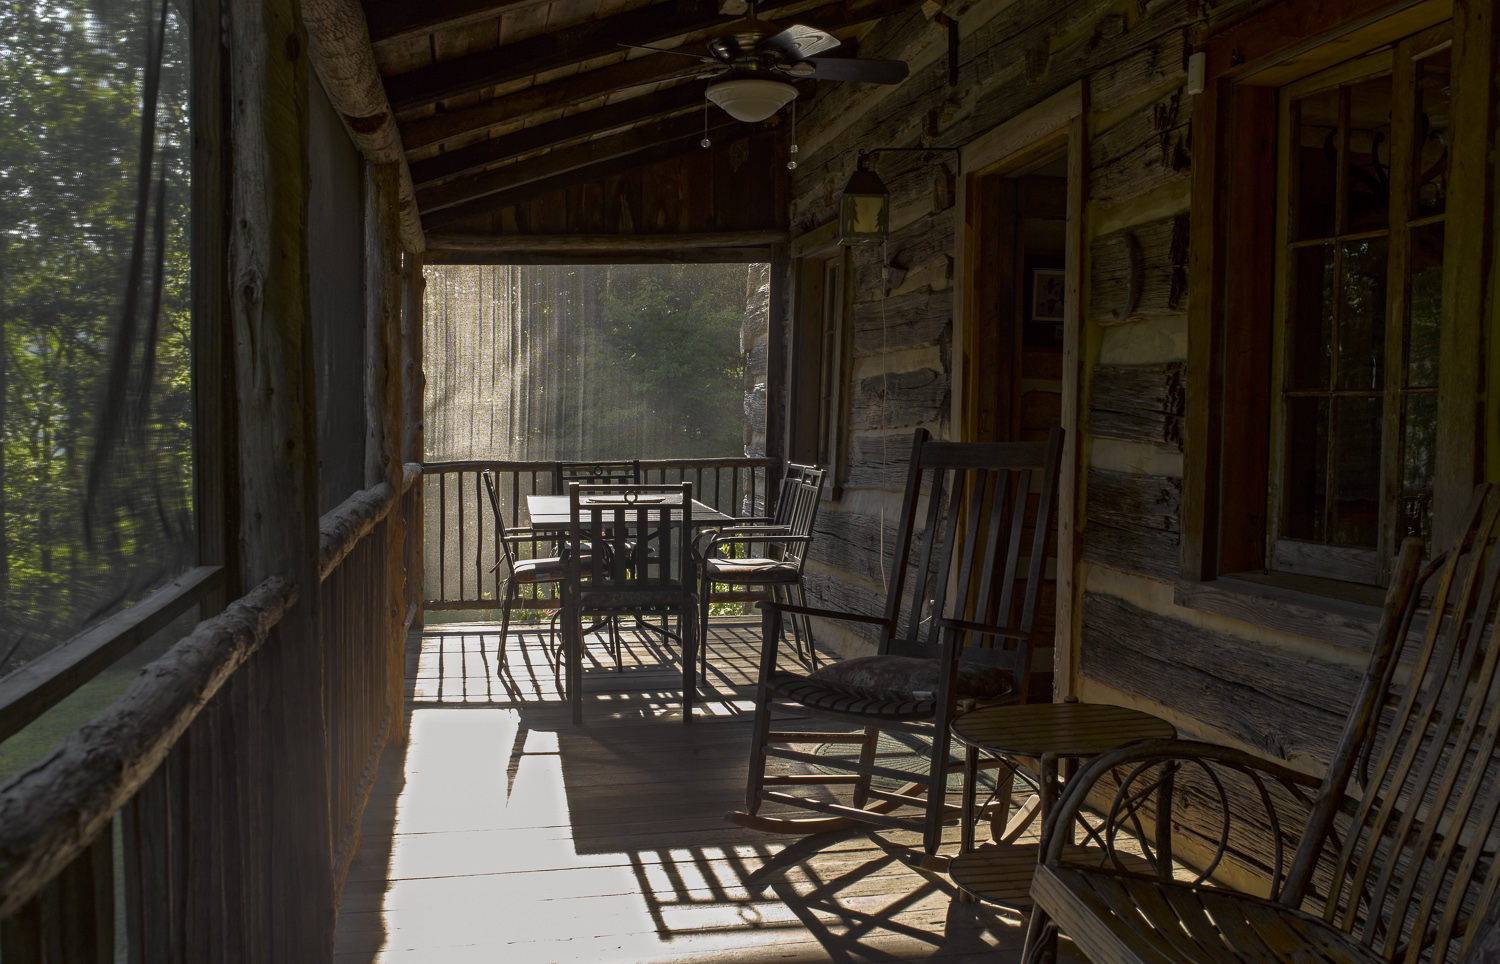 Screened porch - Naked Mountain, Virginia, 2011